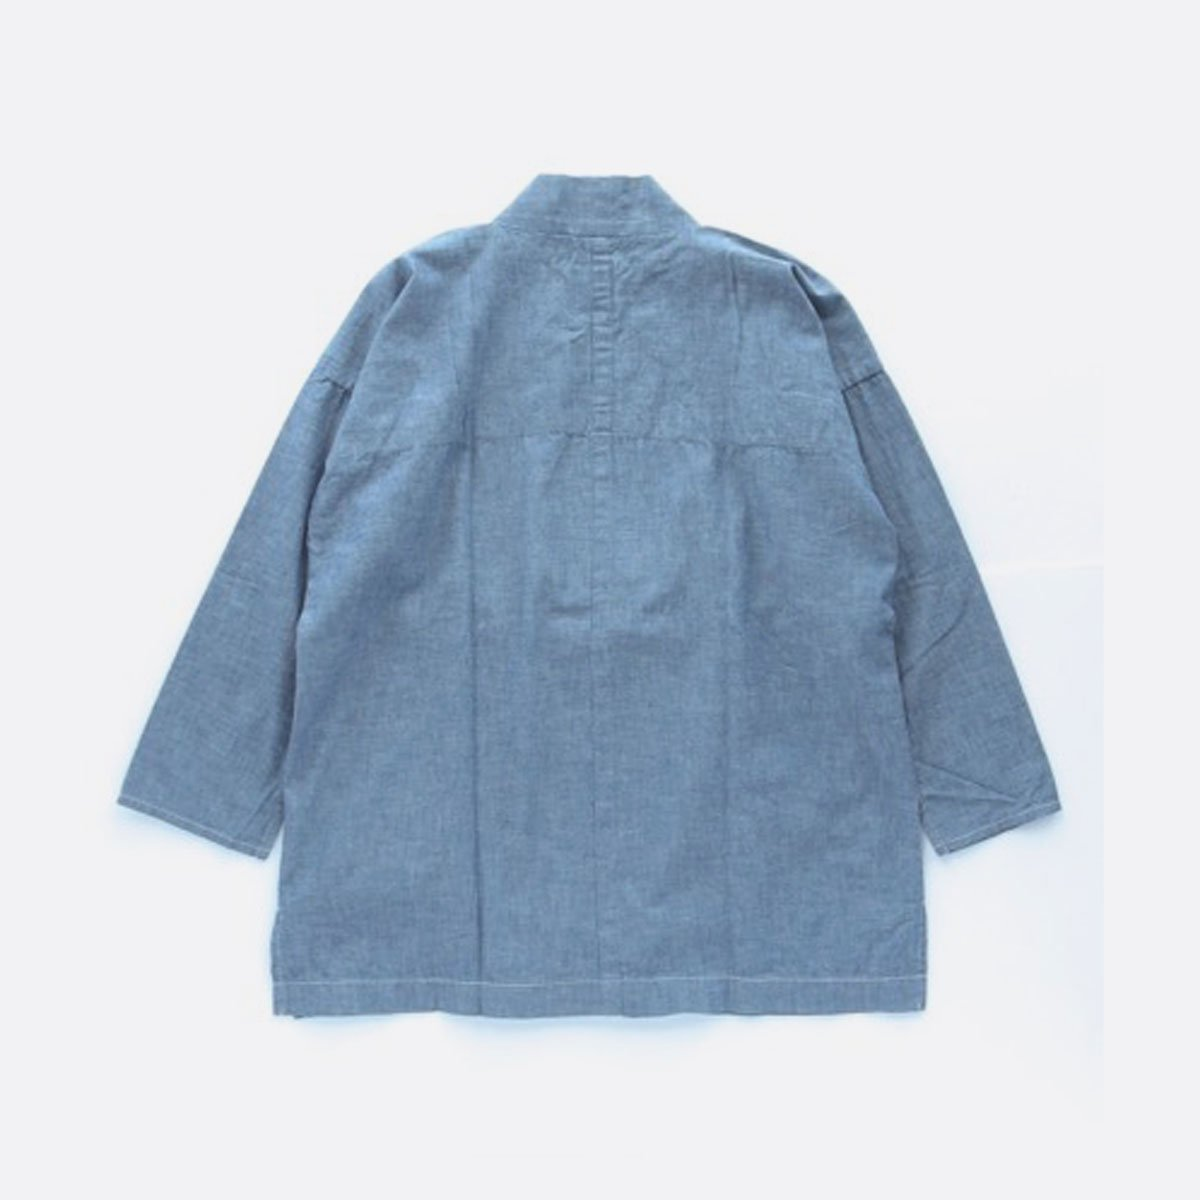 visvim  NORAGI CHAMBRAY  (BLUE)2